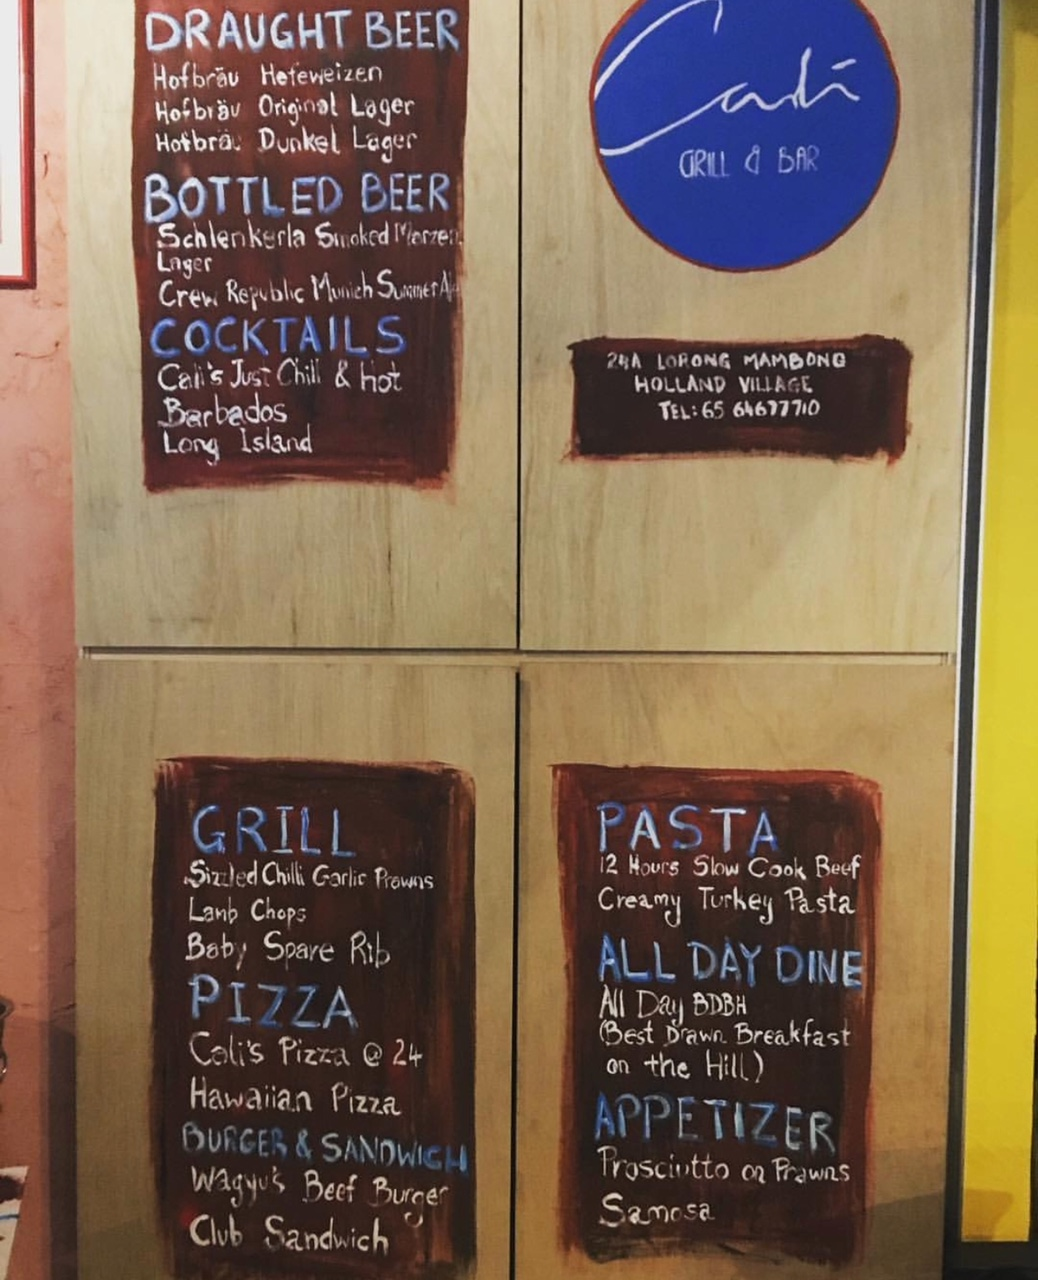 The handwritten menu on the wall with the daily offers.